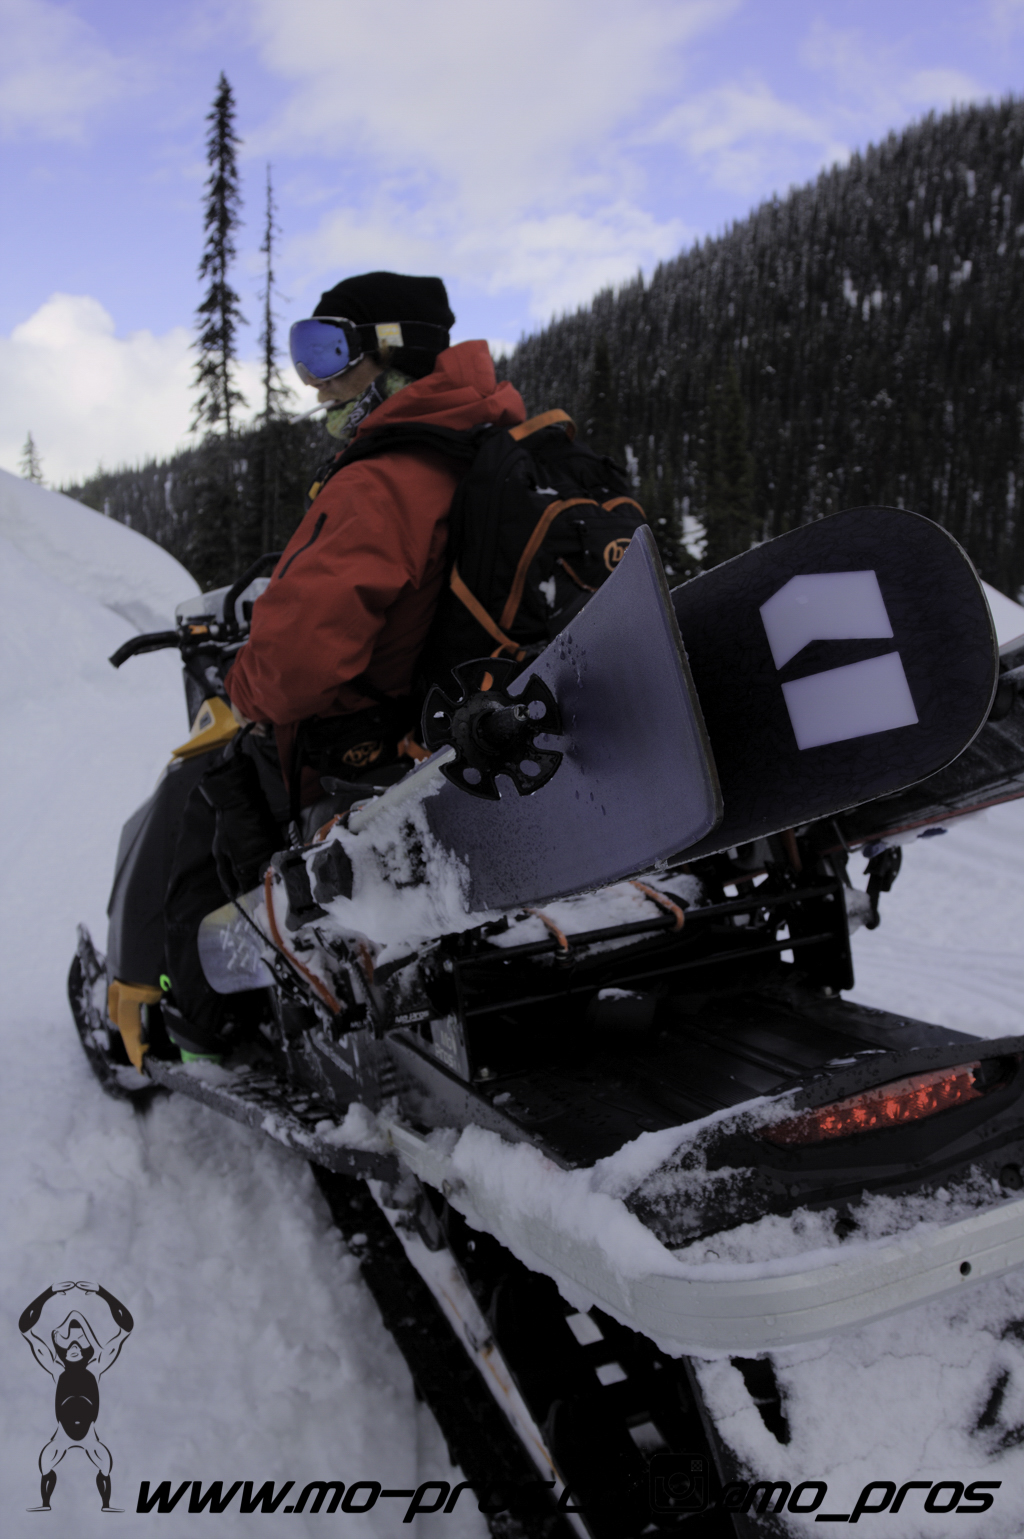 104_Backcountry _Backcountry United_Rack_Ski_Snowbike_Timbersled Rack_Tsaina Rack_CFR rack_Cheetah Factory Racing_gas Rack_Gear_Gun Rack_LinQ Snowboard Ski_Snowboard rack_snowboard_Snowboarding_snowm.jpg